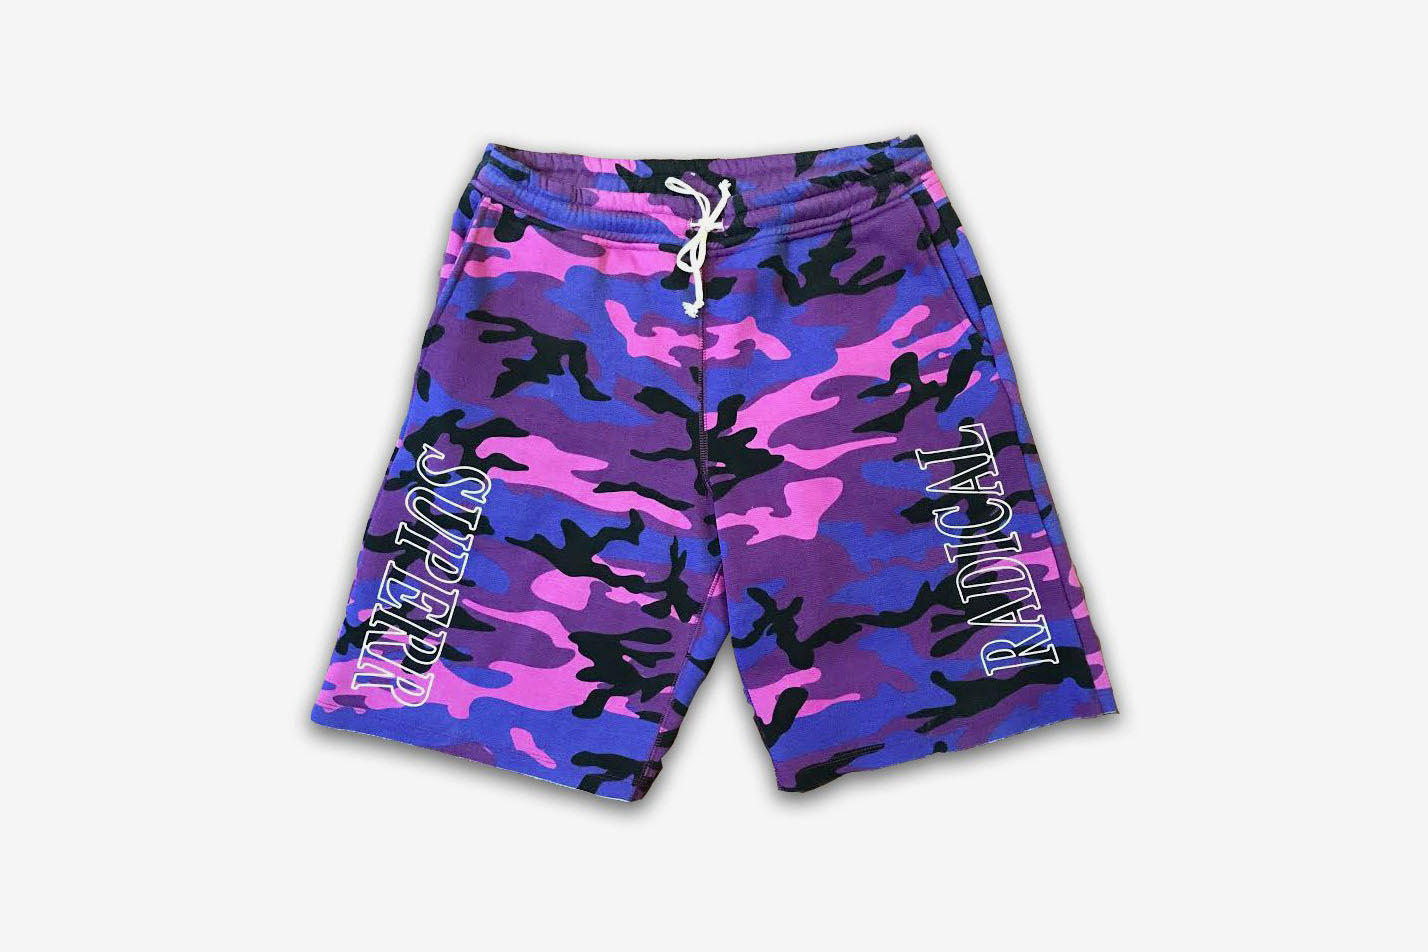 Superrradical Camo Shorts What Drops Now